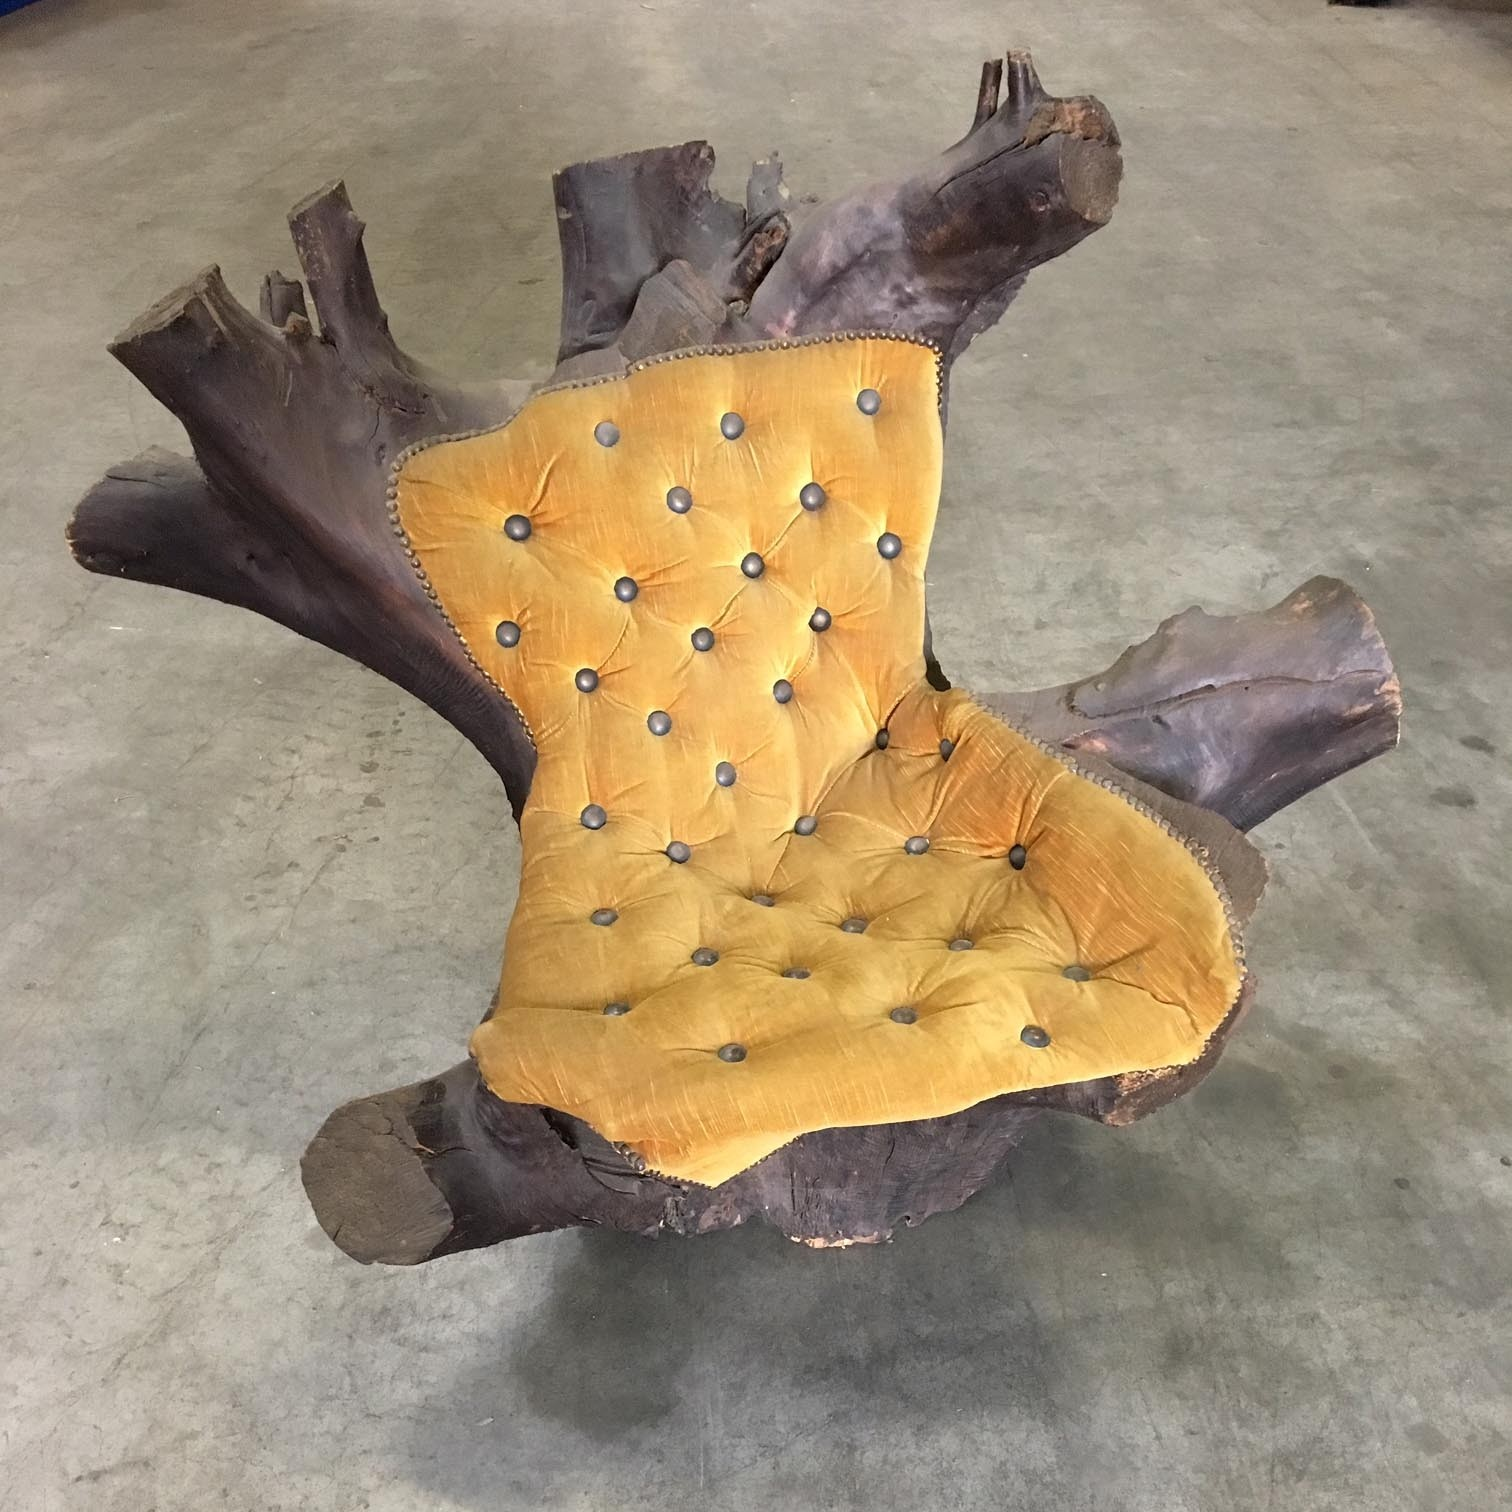 Chair made from tree trunk